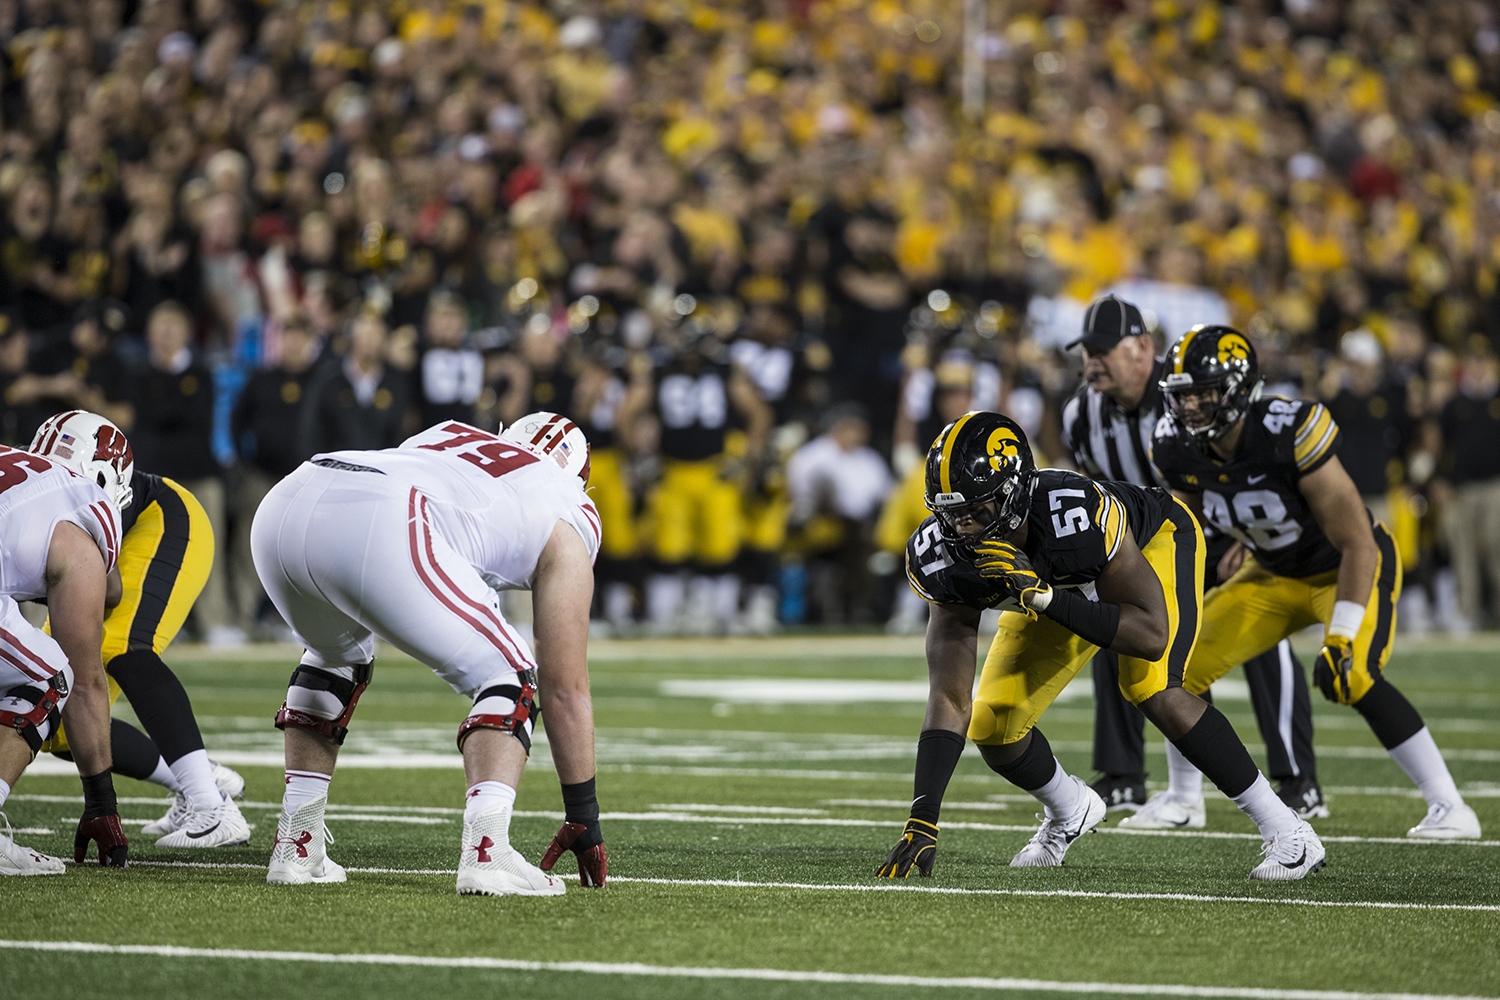 Iowa%27s+Chauncey+Golston+lines+up+on+defense+during+a+football+game+between+Iowa+and+Wisconsin+on+Saturday%2C+September+22%2C+2018.+The+Badgers+defeated+the+Hawkeyes%2C+28-17.+%28Shivansh+Ahuja%2FThe+Daily+Iowan%29